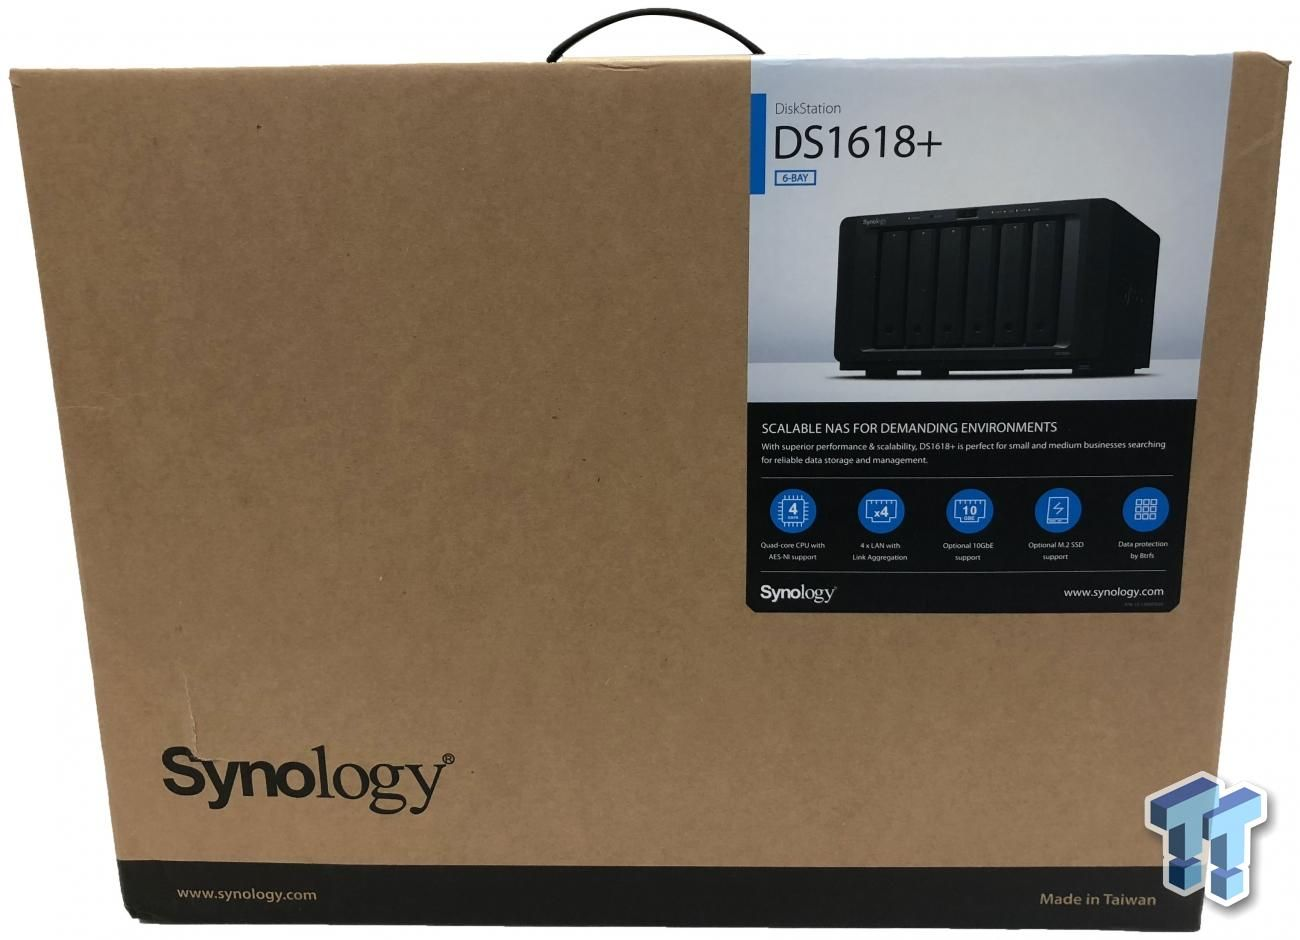 Synology DS1618+ SixBay NAS Review Tech